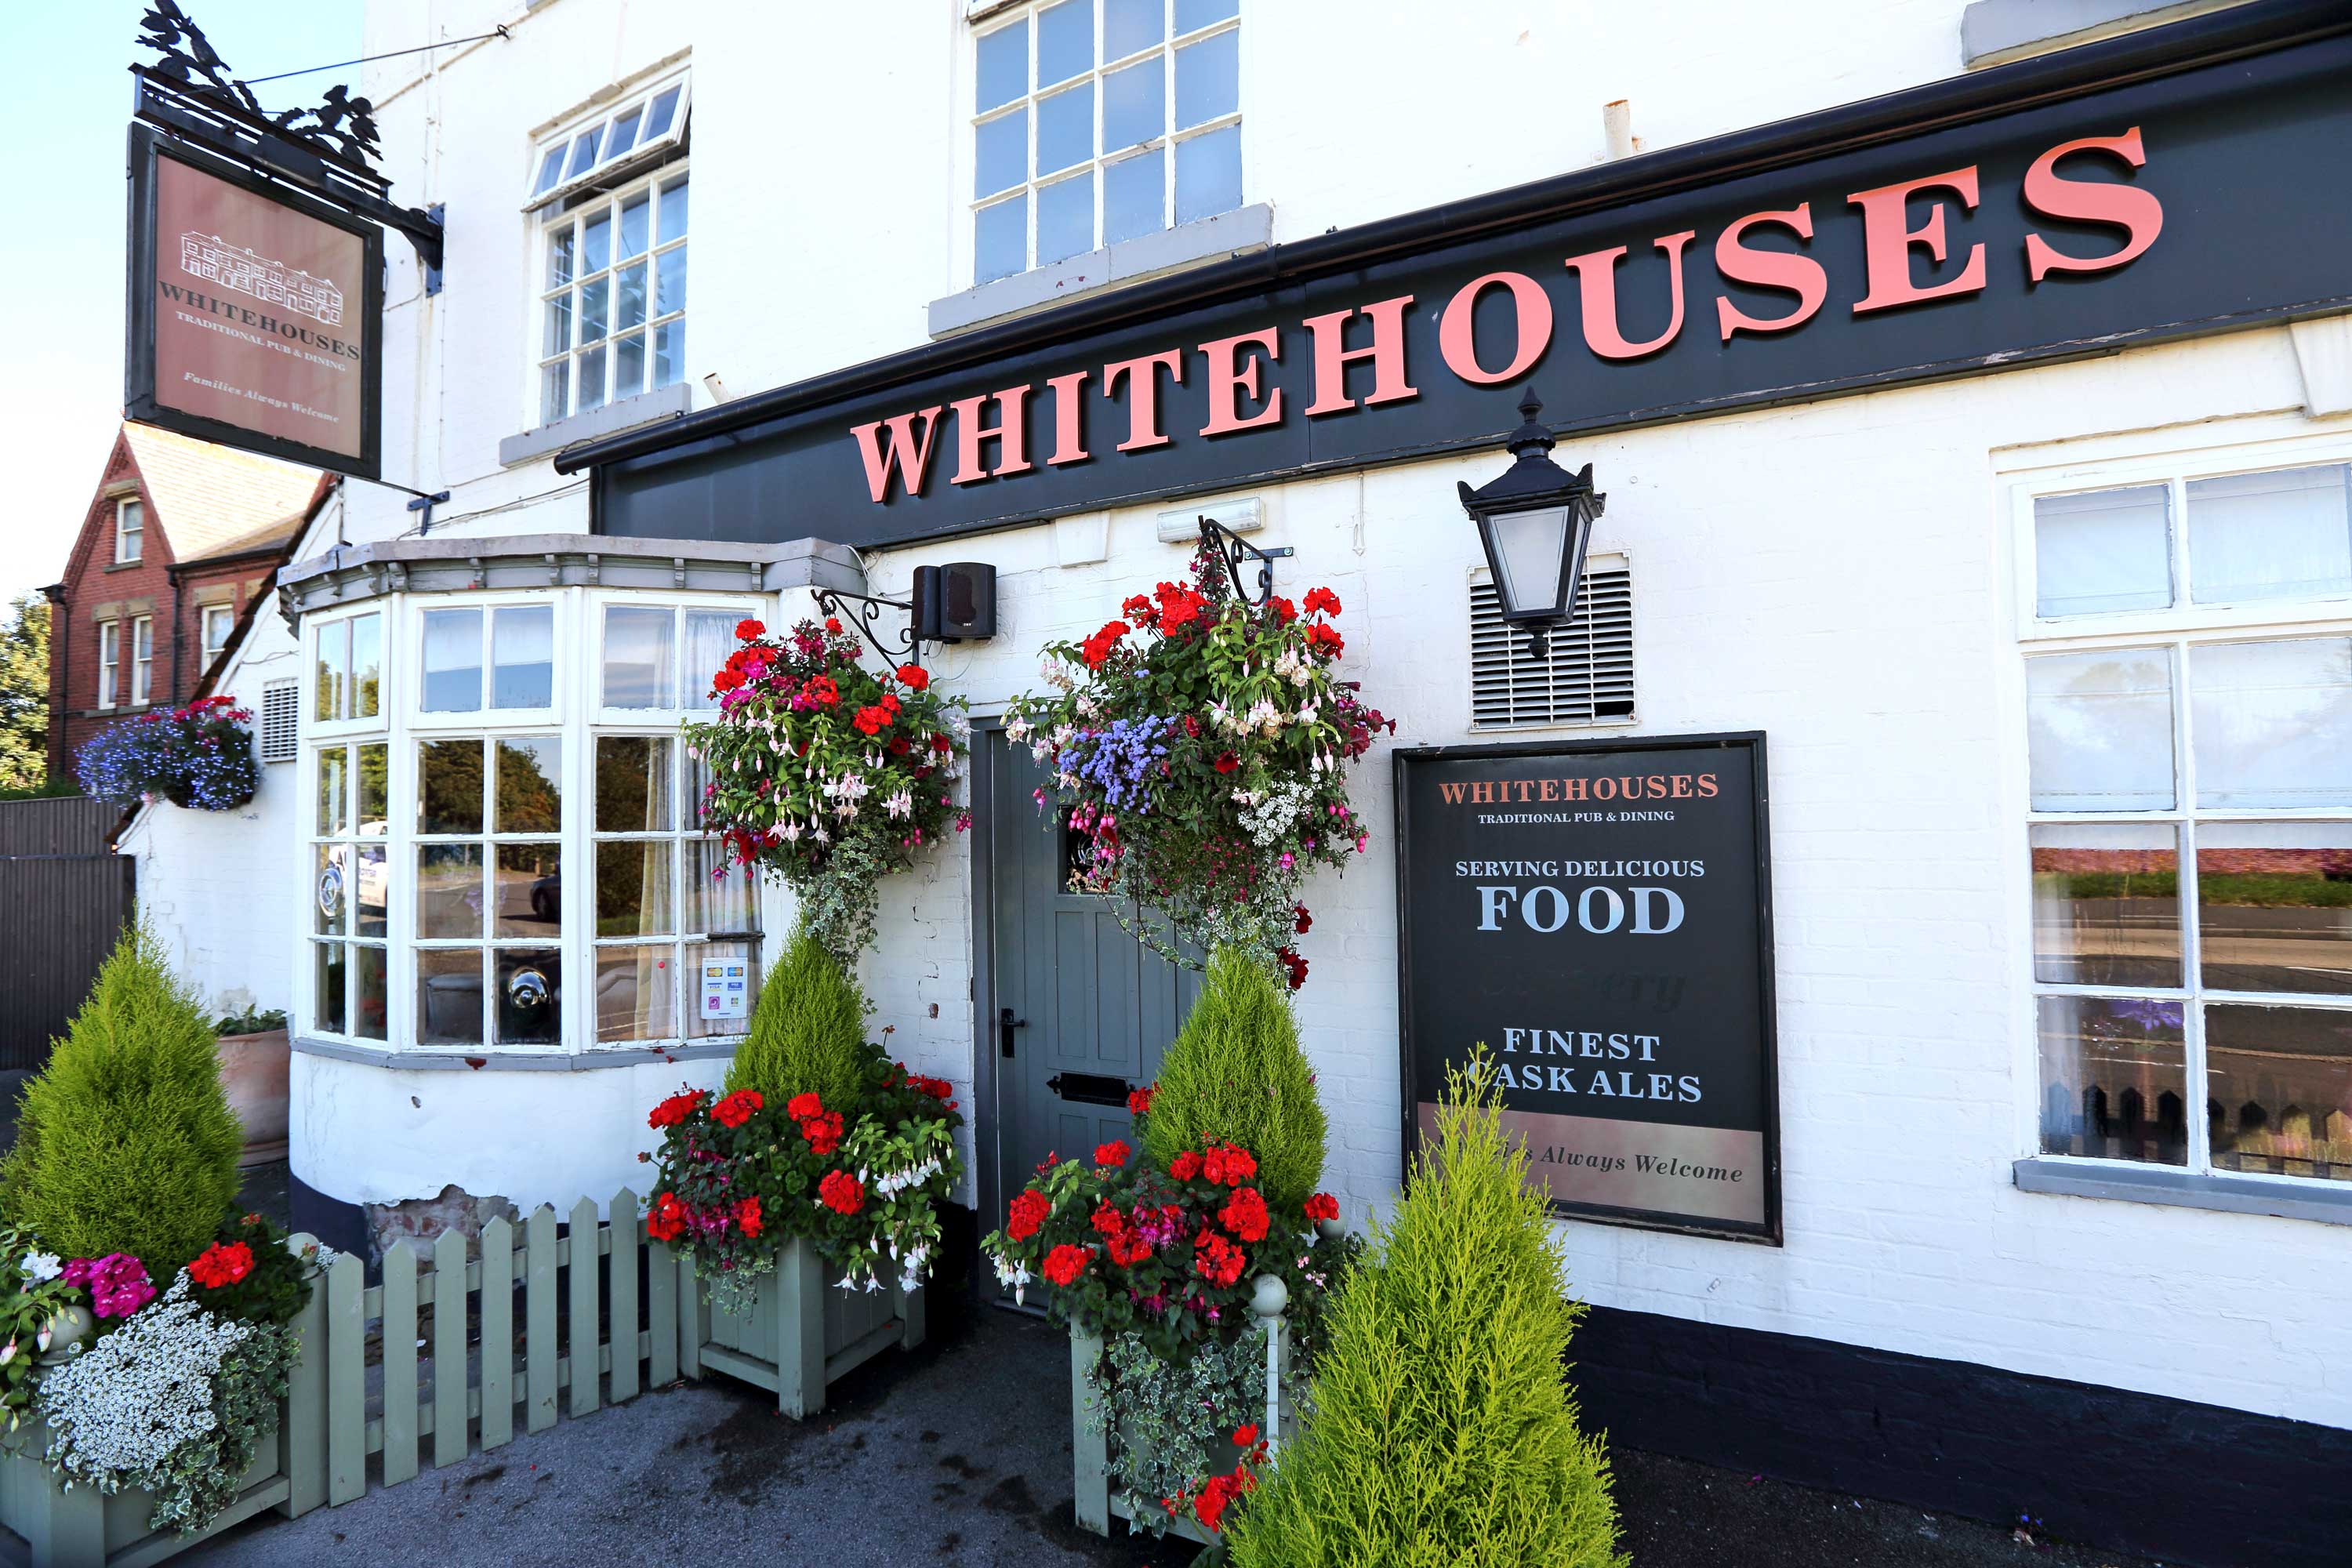 Whitehouses Traditional Pub and Dining in Retford